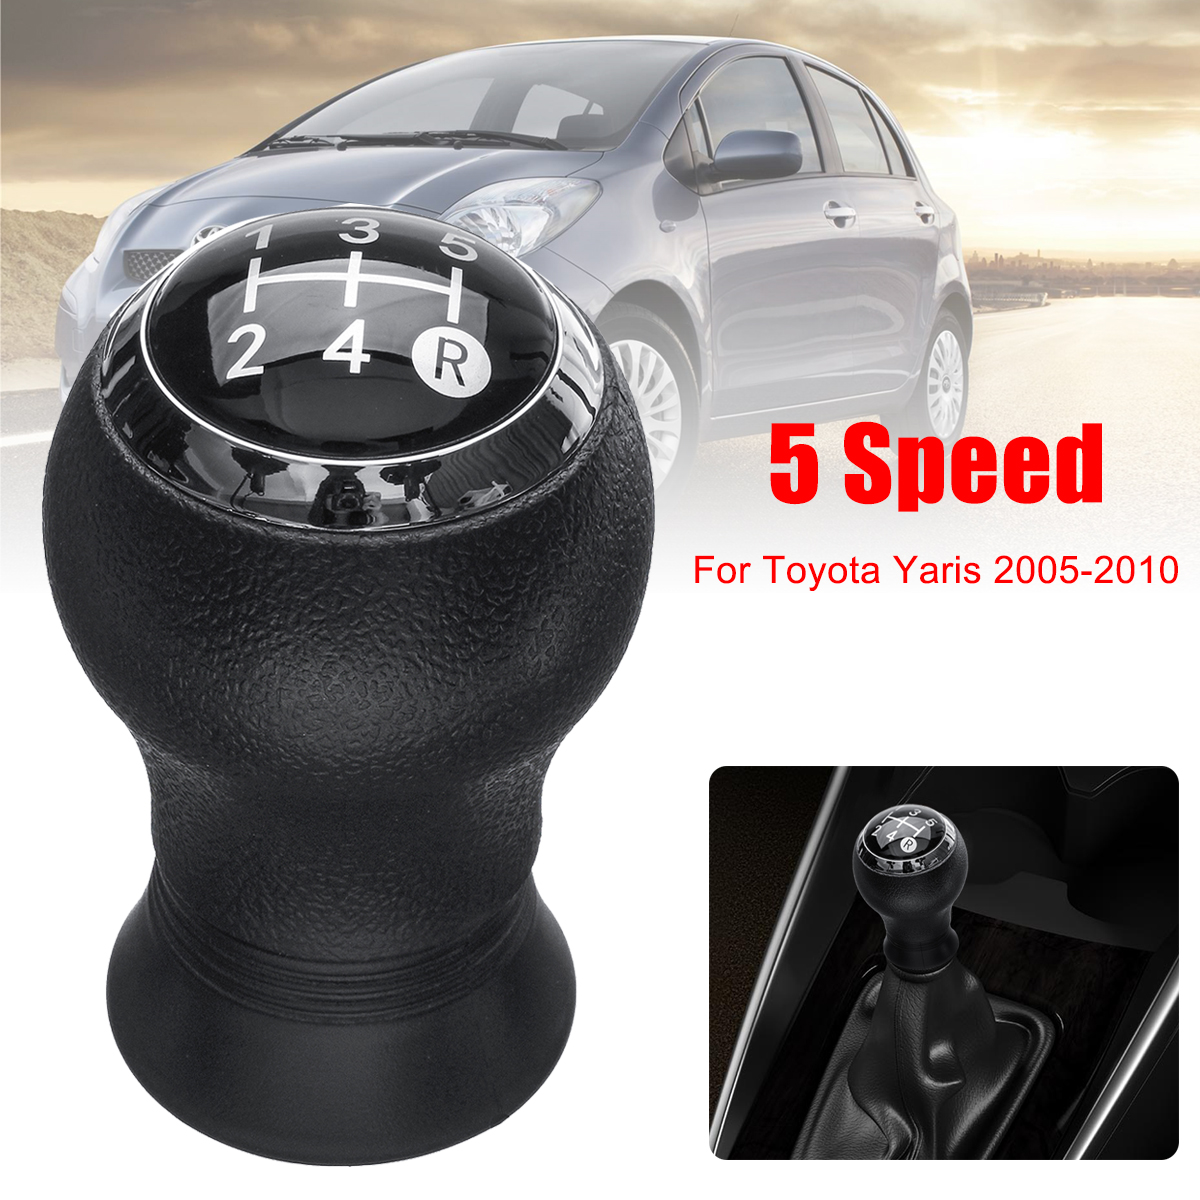 For Toyota Yaris 2005-2010 5 Speed MT Car Gear Shift Knob Head Gear Knob Cover Shifter Lever Stick 1pc new universal car 5 speed mt manual round silicone car gear shift knob cover anti slip case nonslip for chevy hyundai toyota